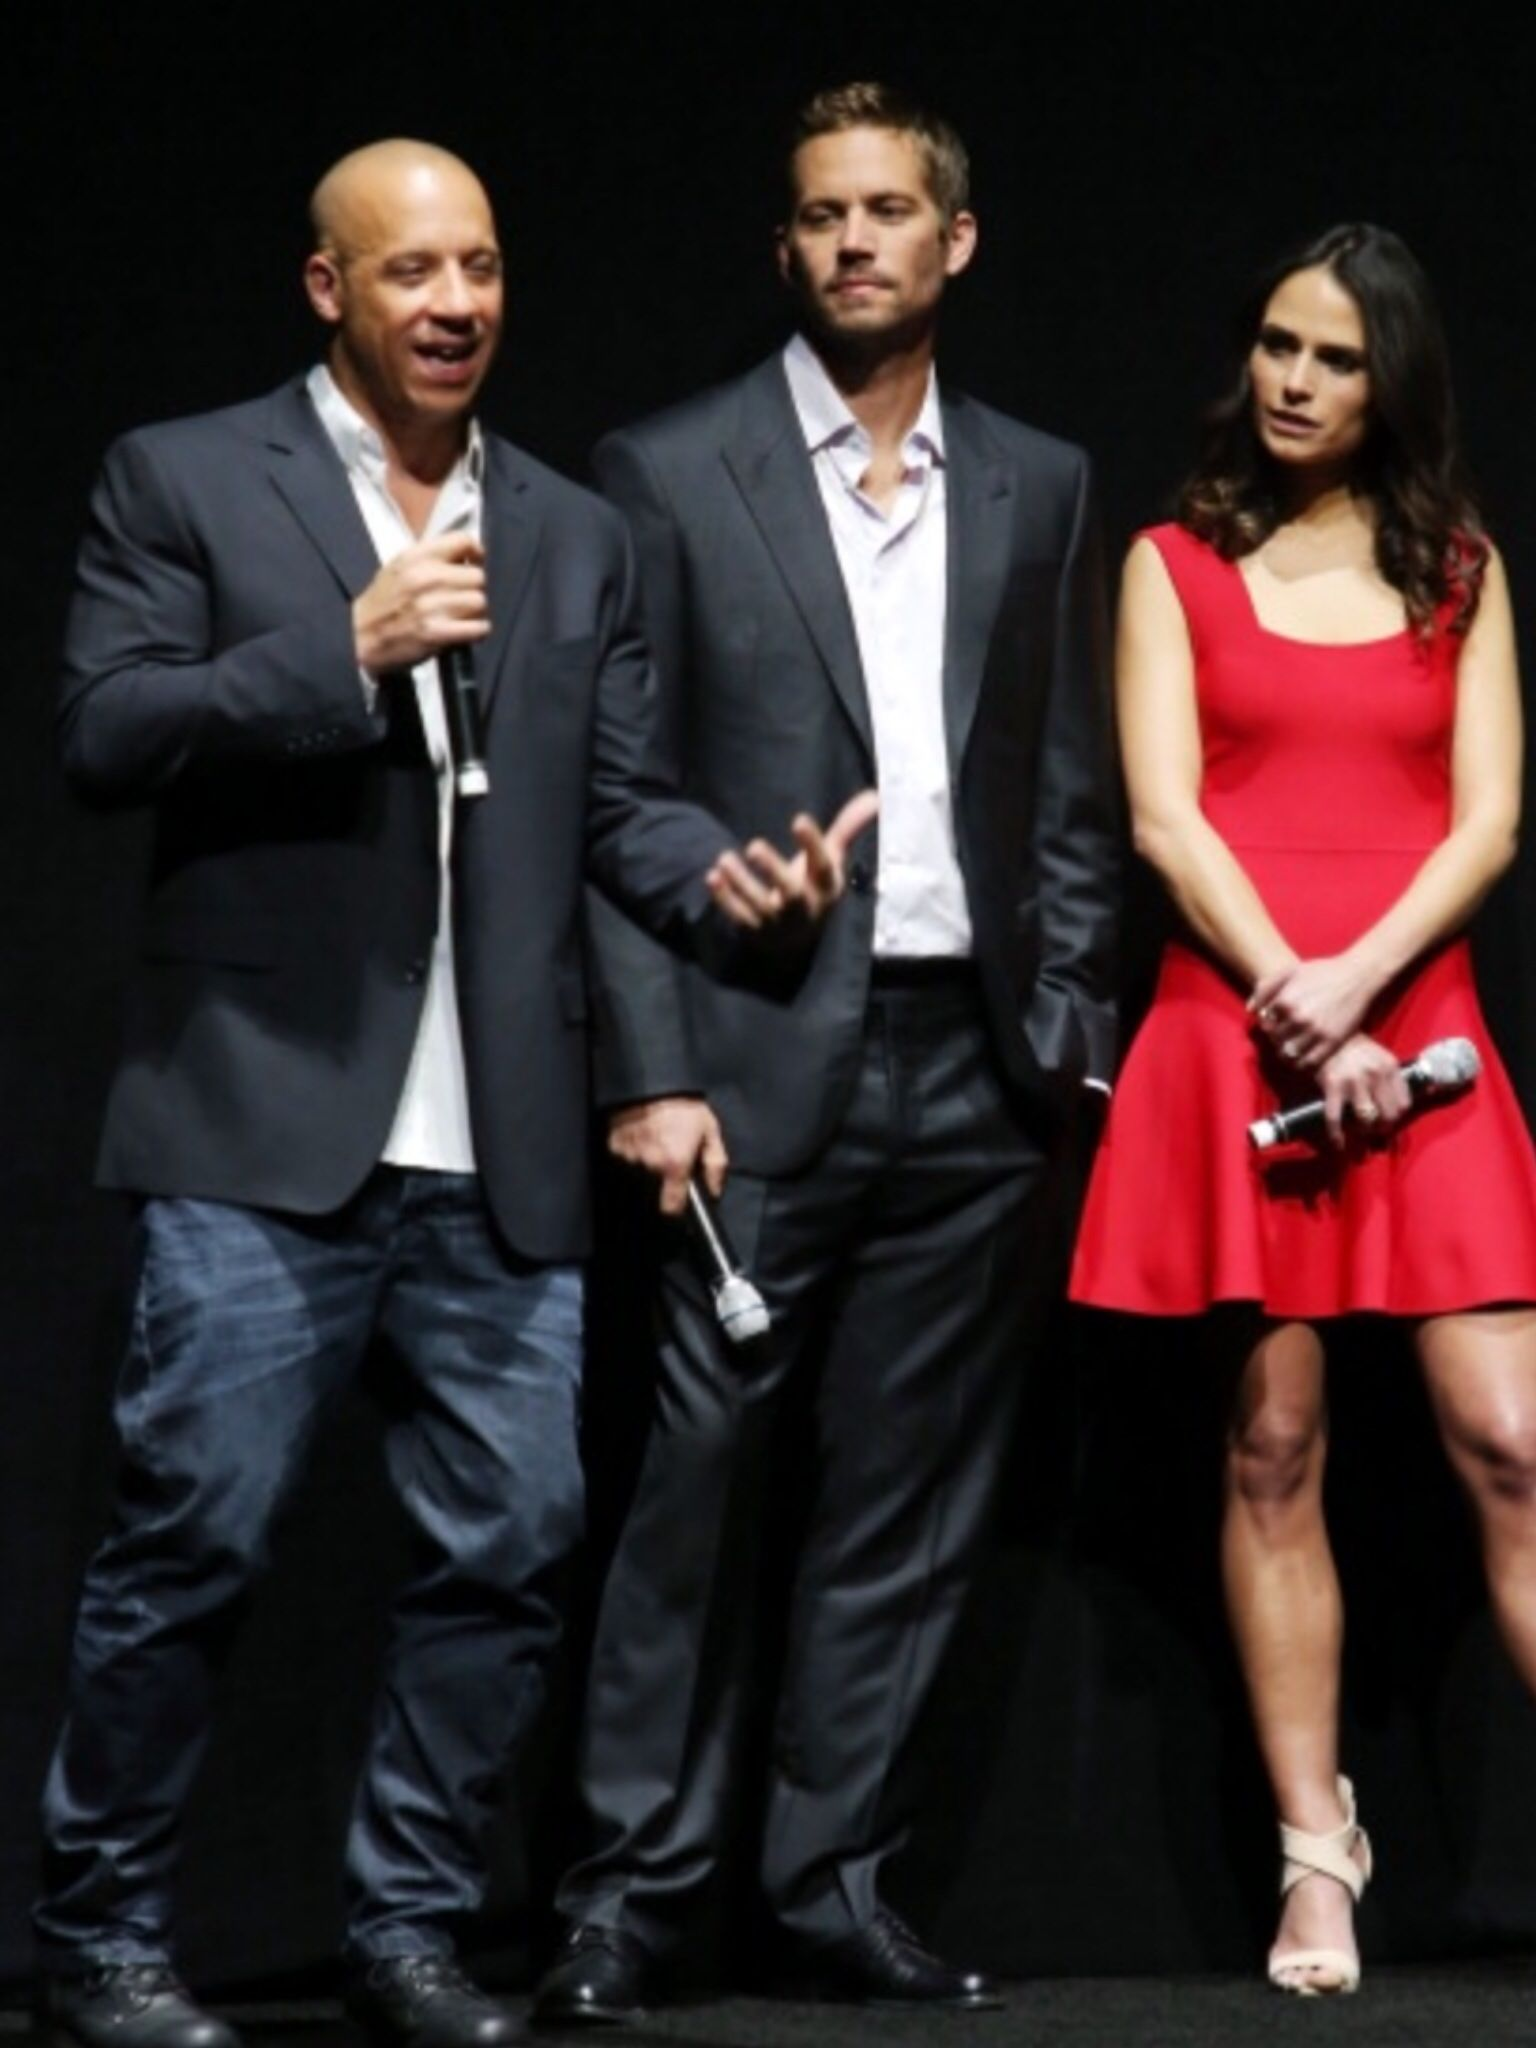 Promoting FF6 at Cinema Con in Las Vegas 16th April 2013